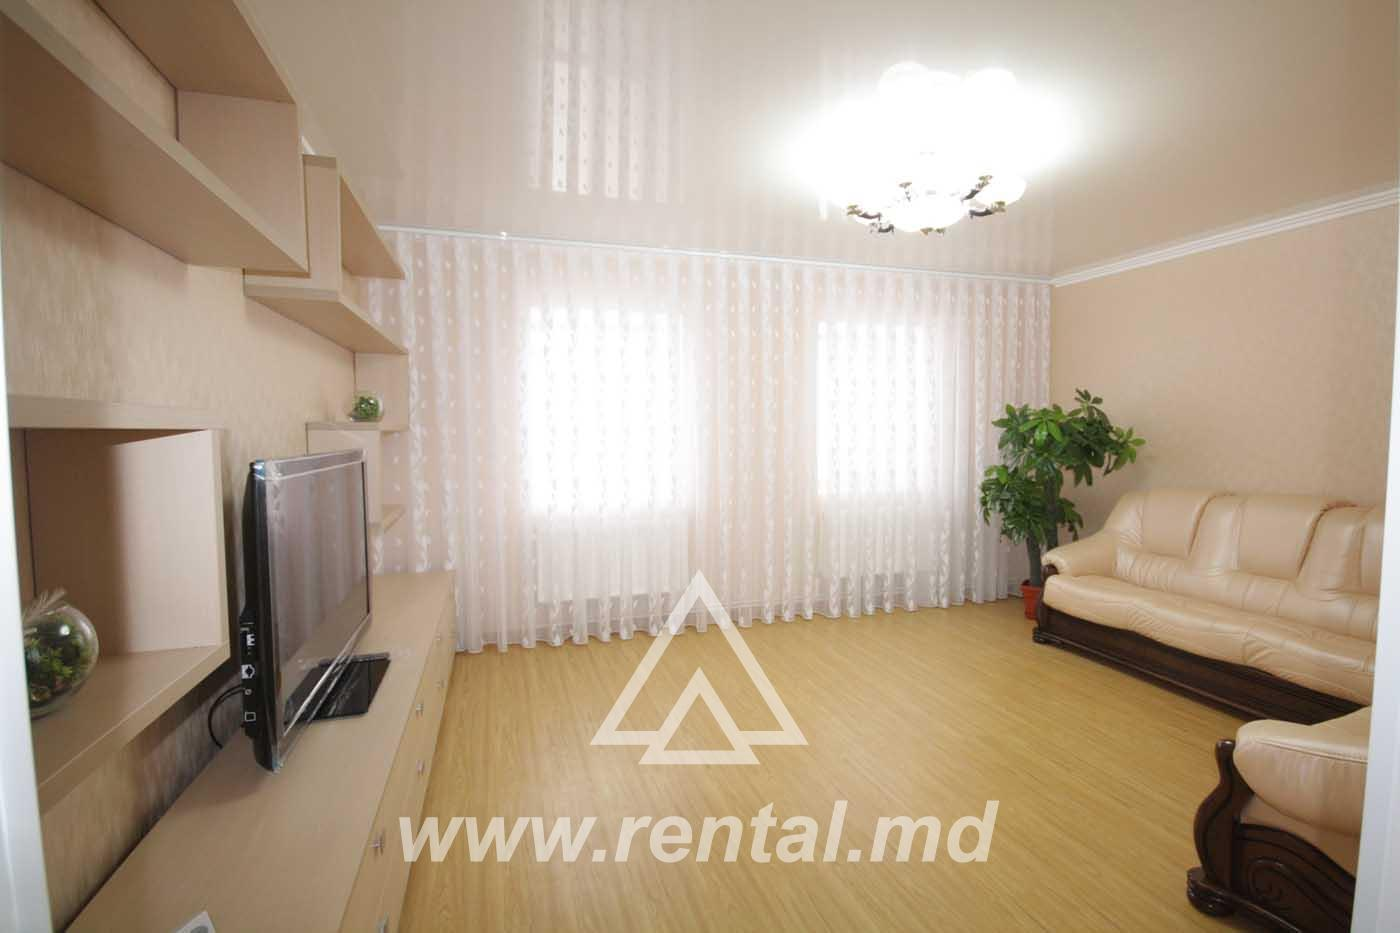 Residential house only for long term rent on Telecenter